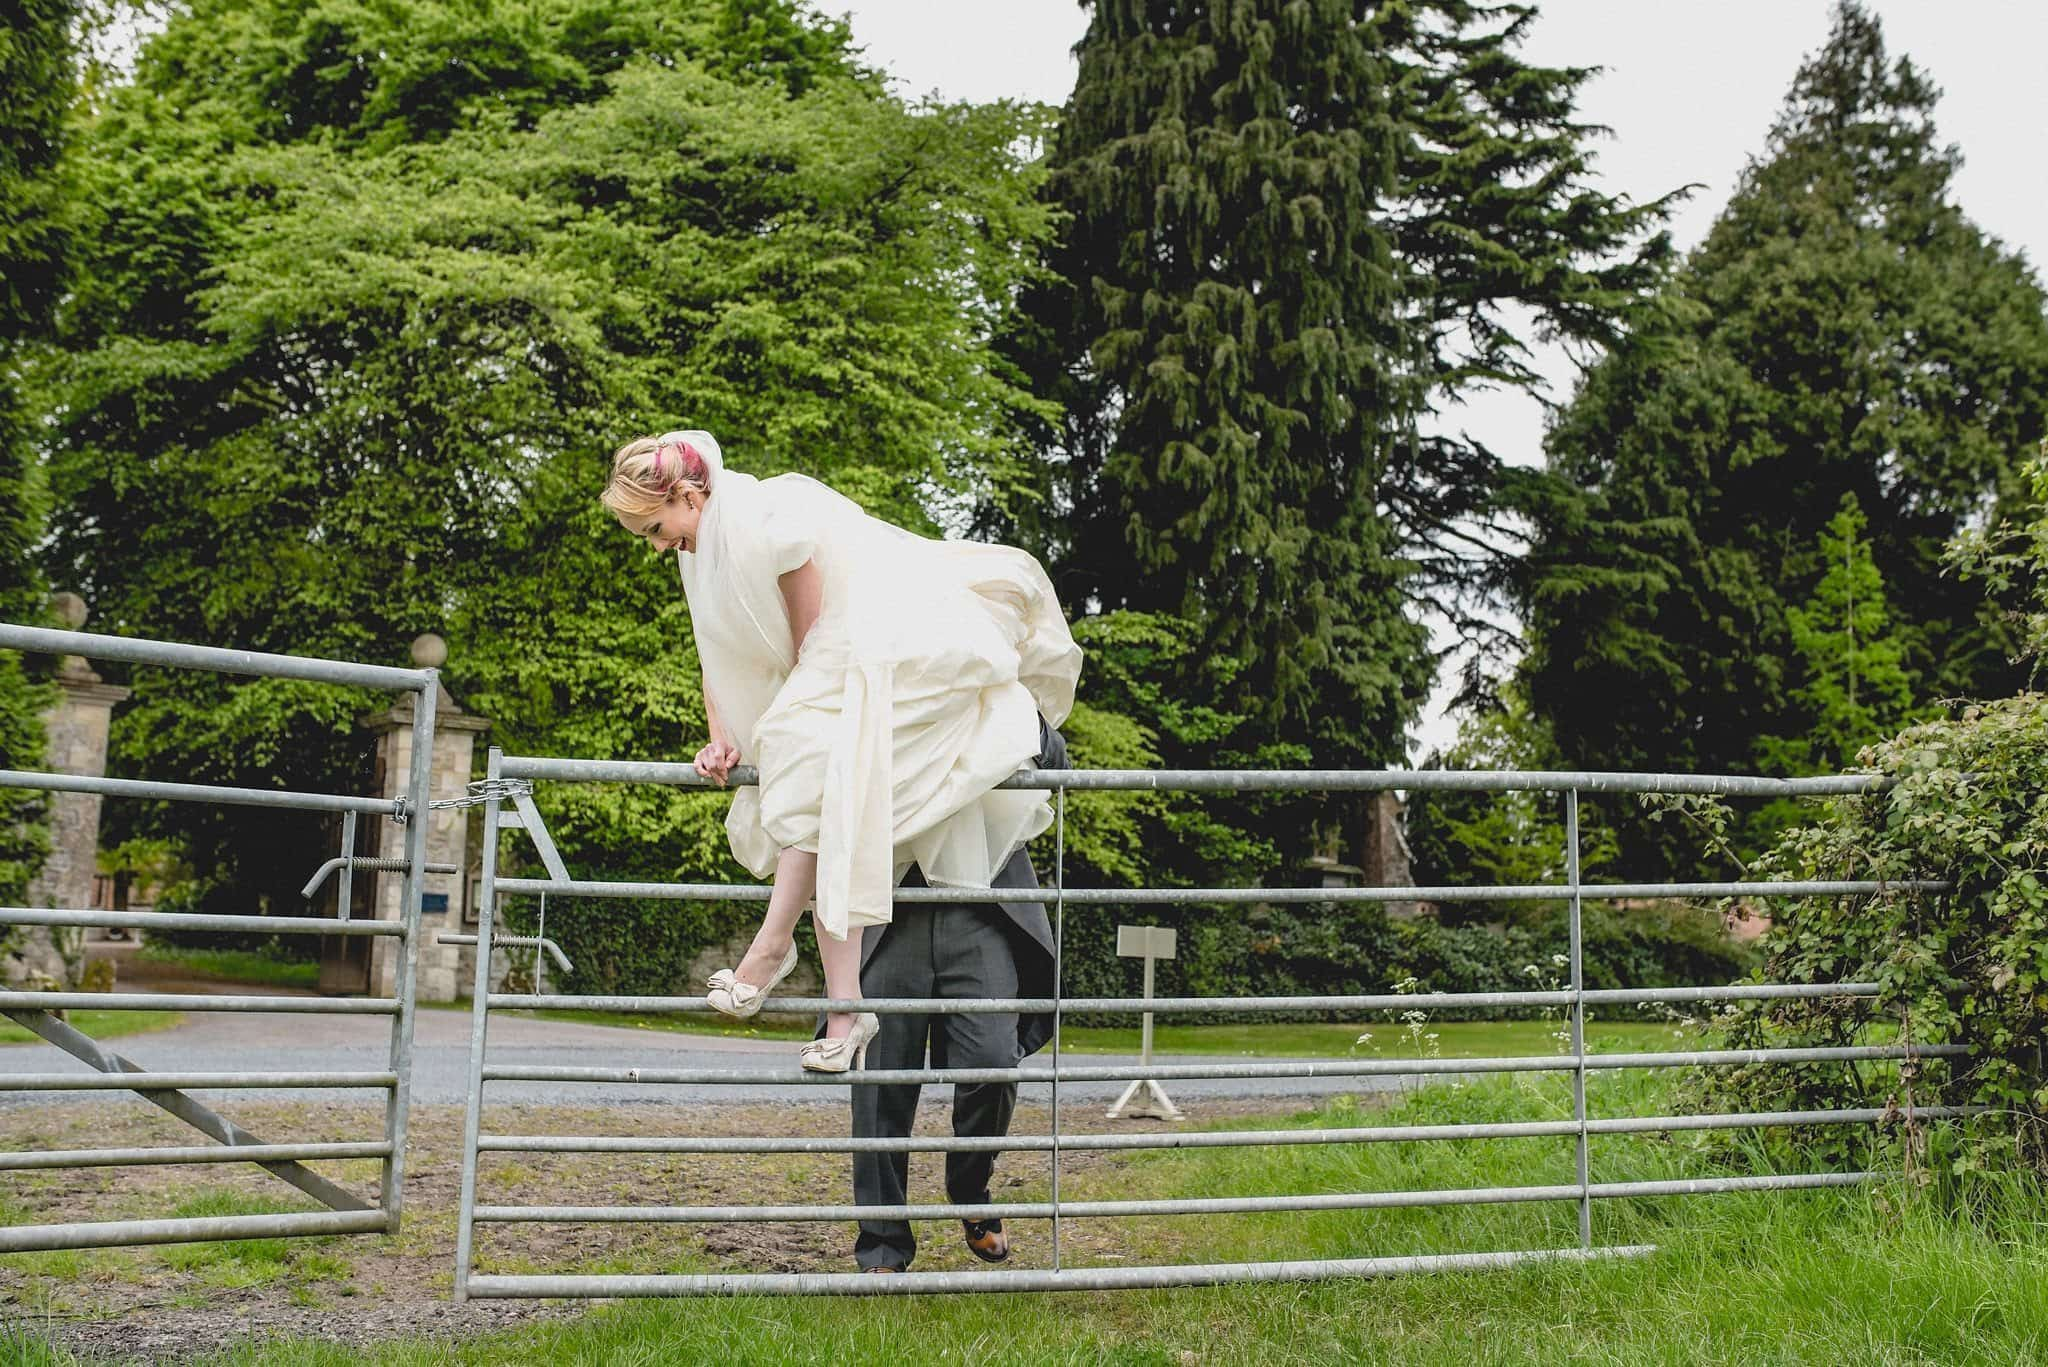 The adventurous bride climbs over a gate in her wedding dress while on their couple's shoot